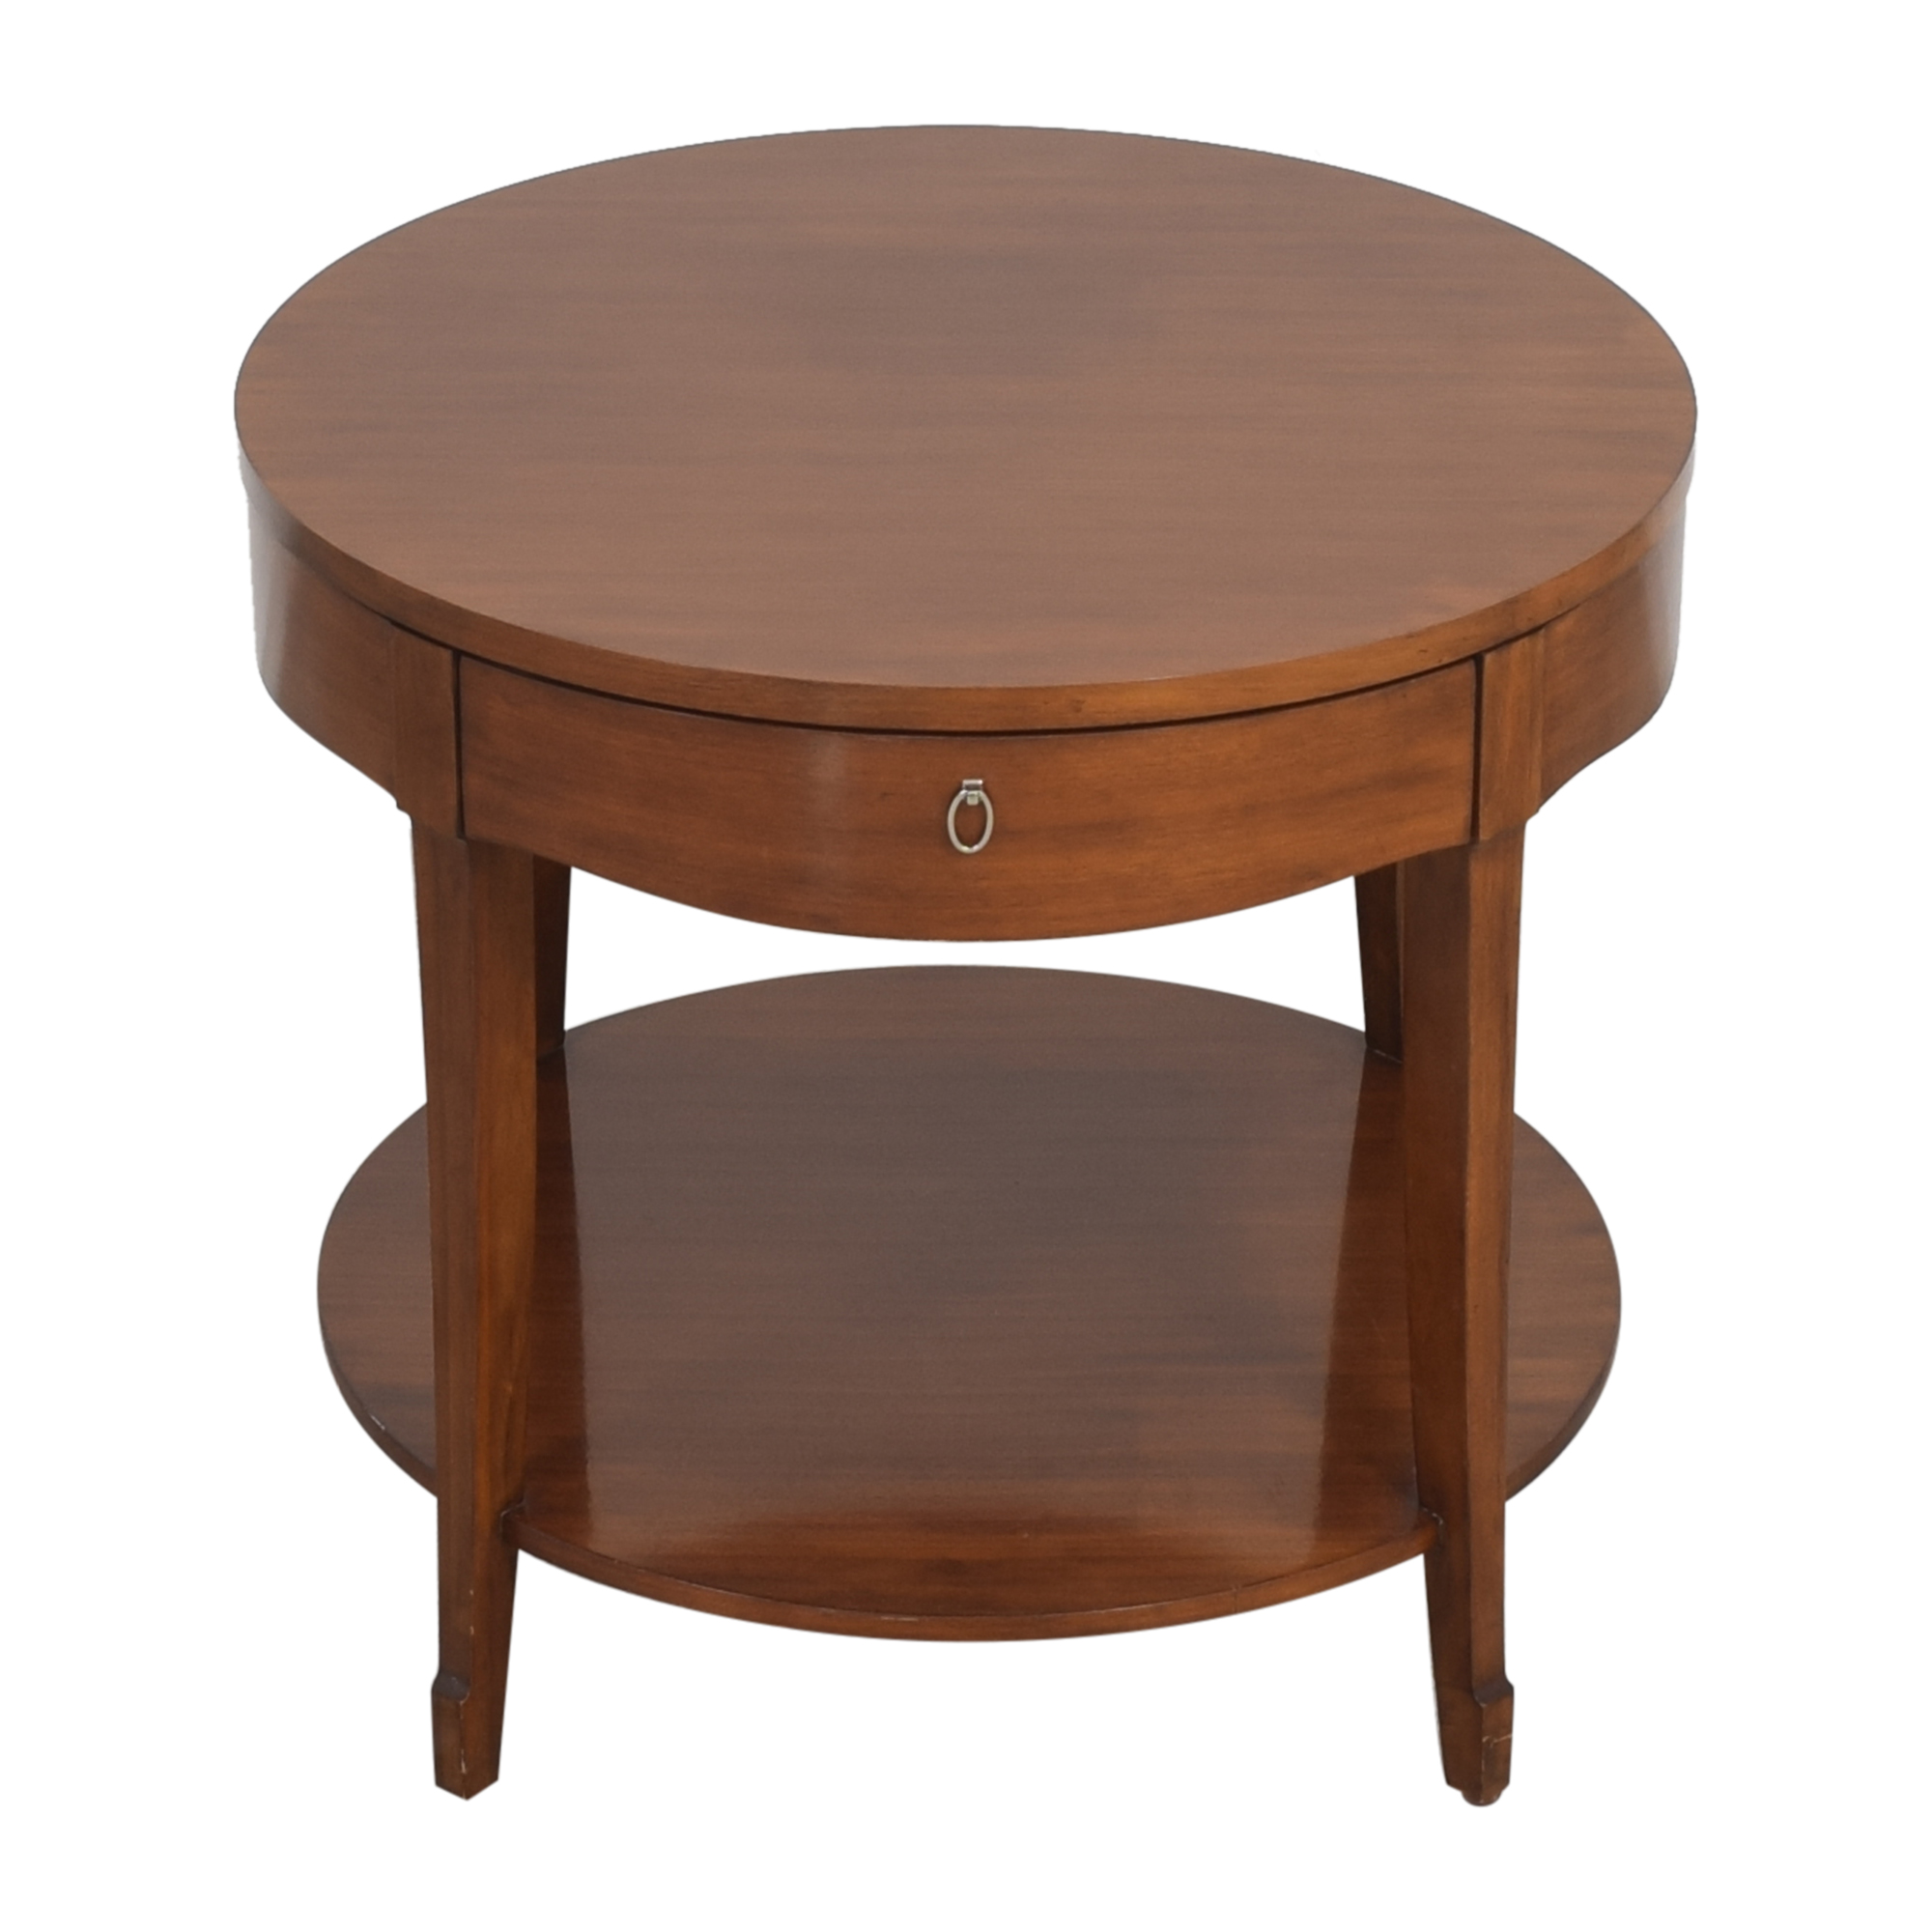 Henredon Furniture Henredon Furniture Round End Table with Drawer discount